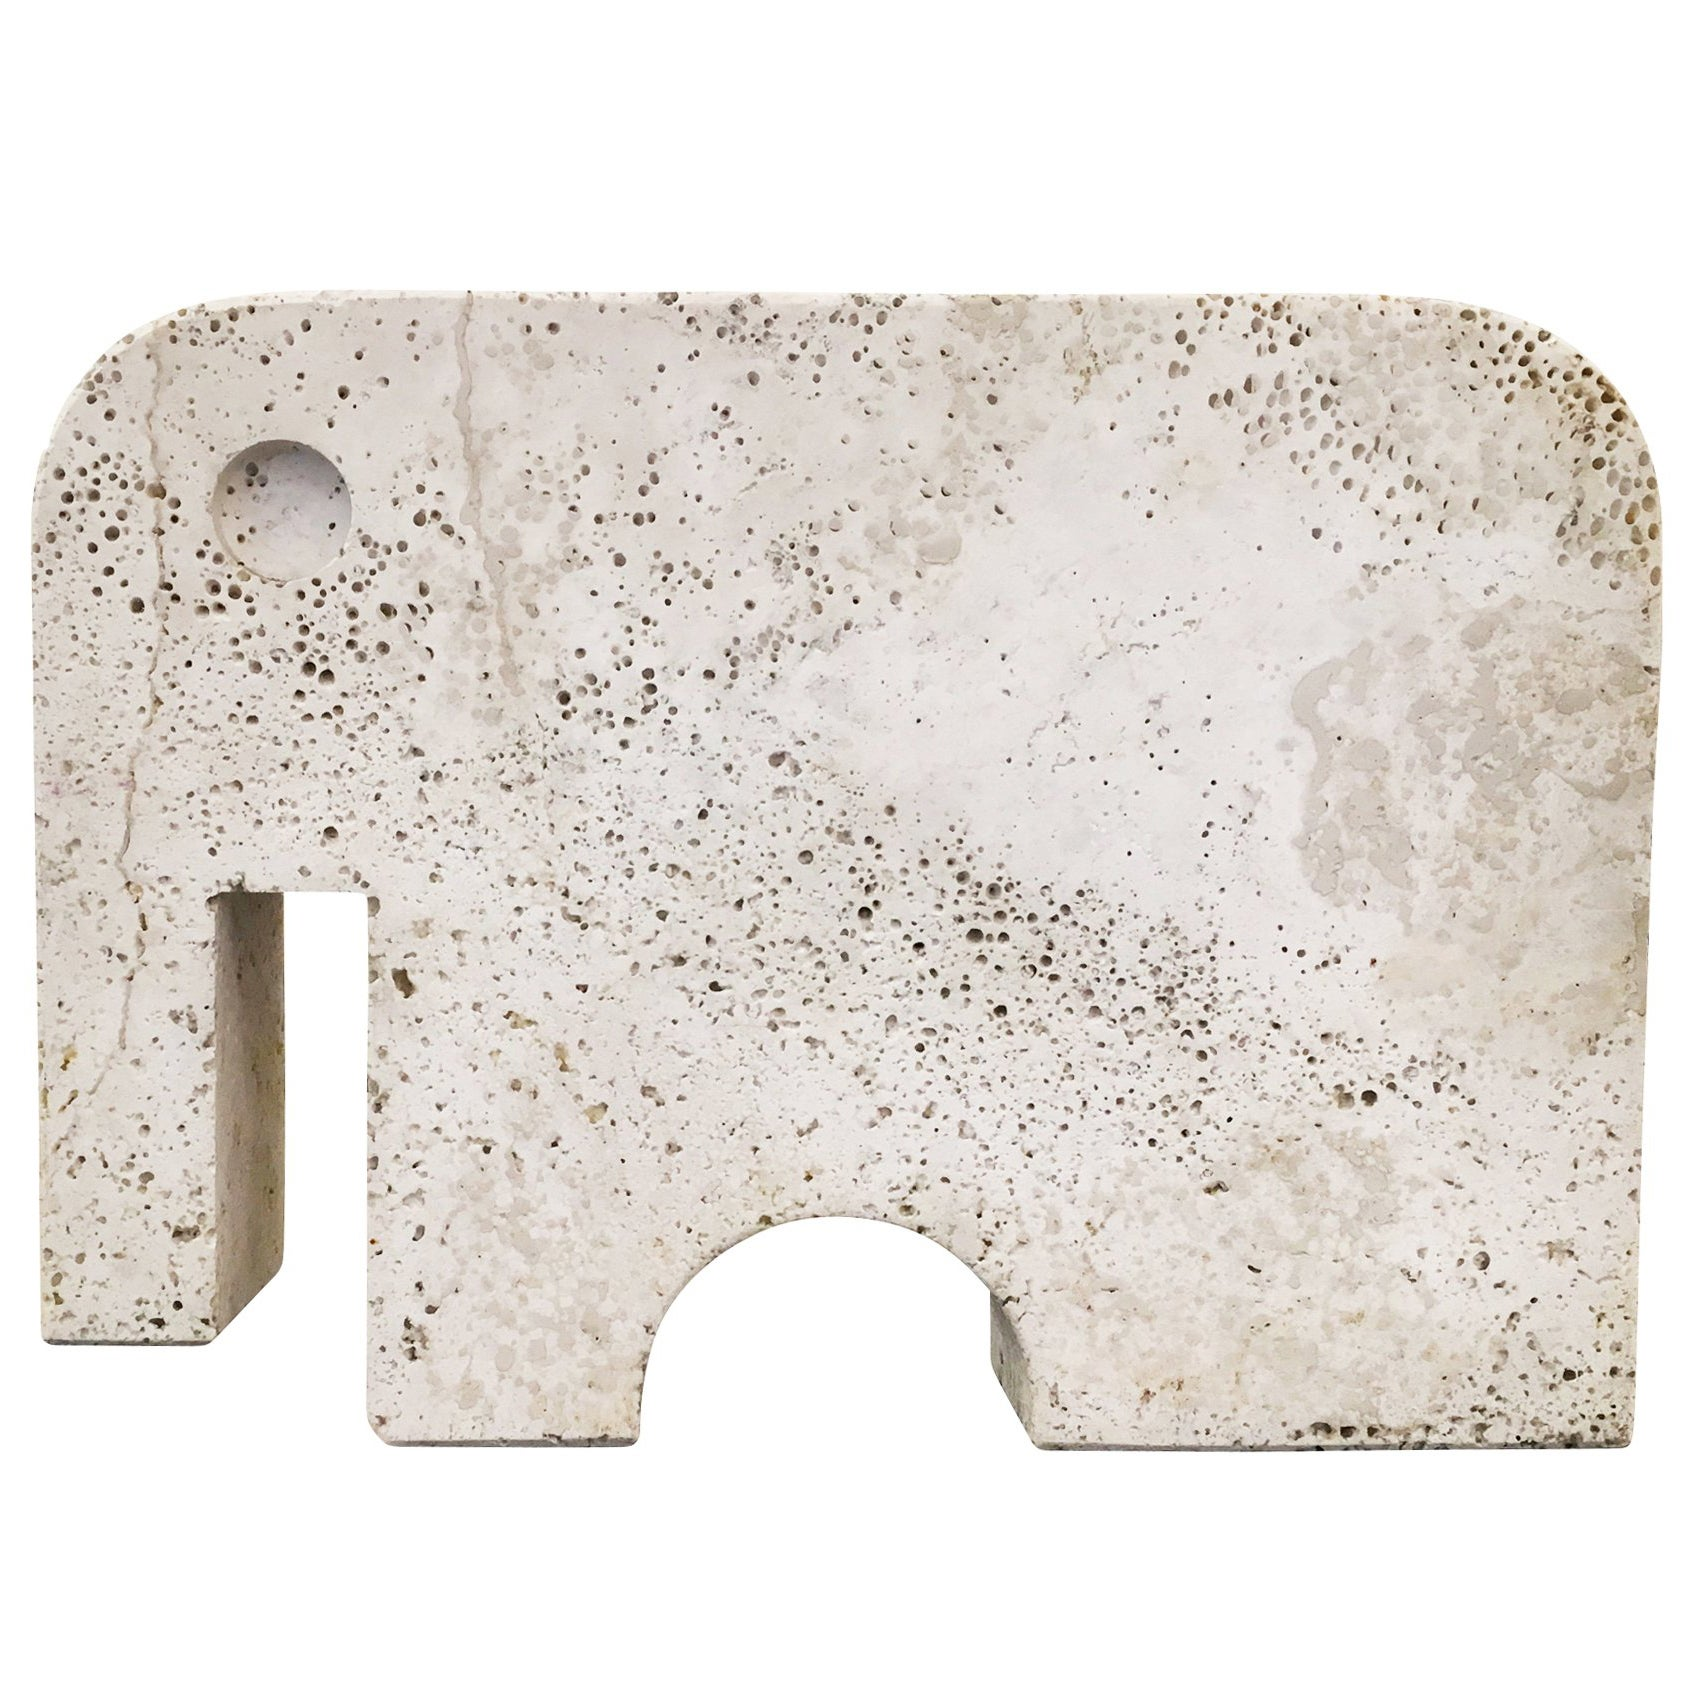 Travertine Elephant by Angelo Mangiarotti For Sale at 1stdibs